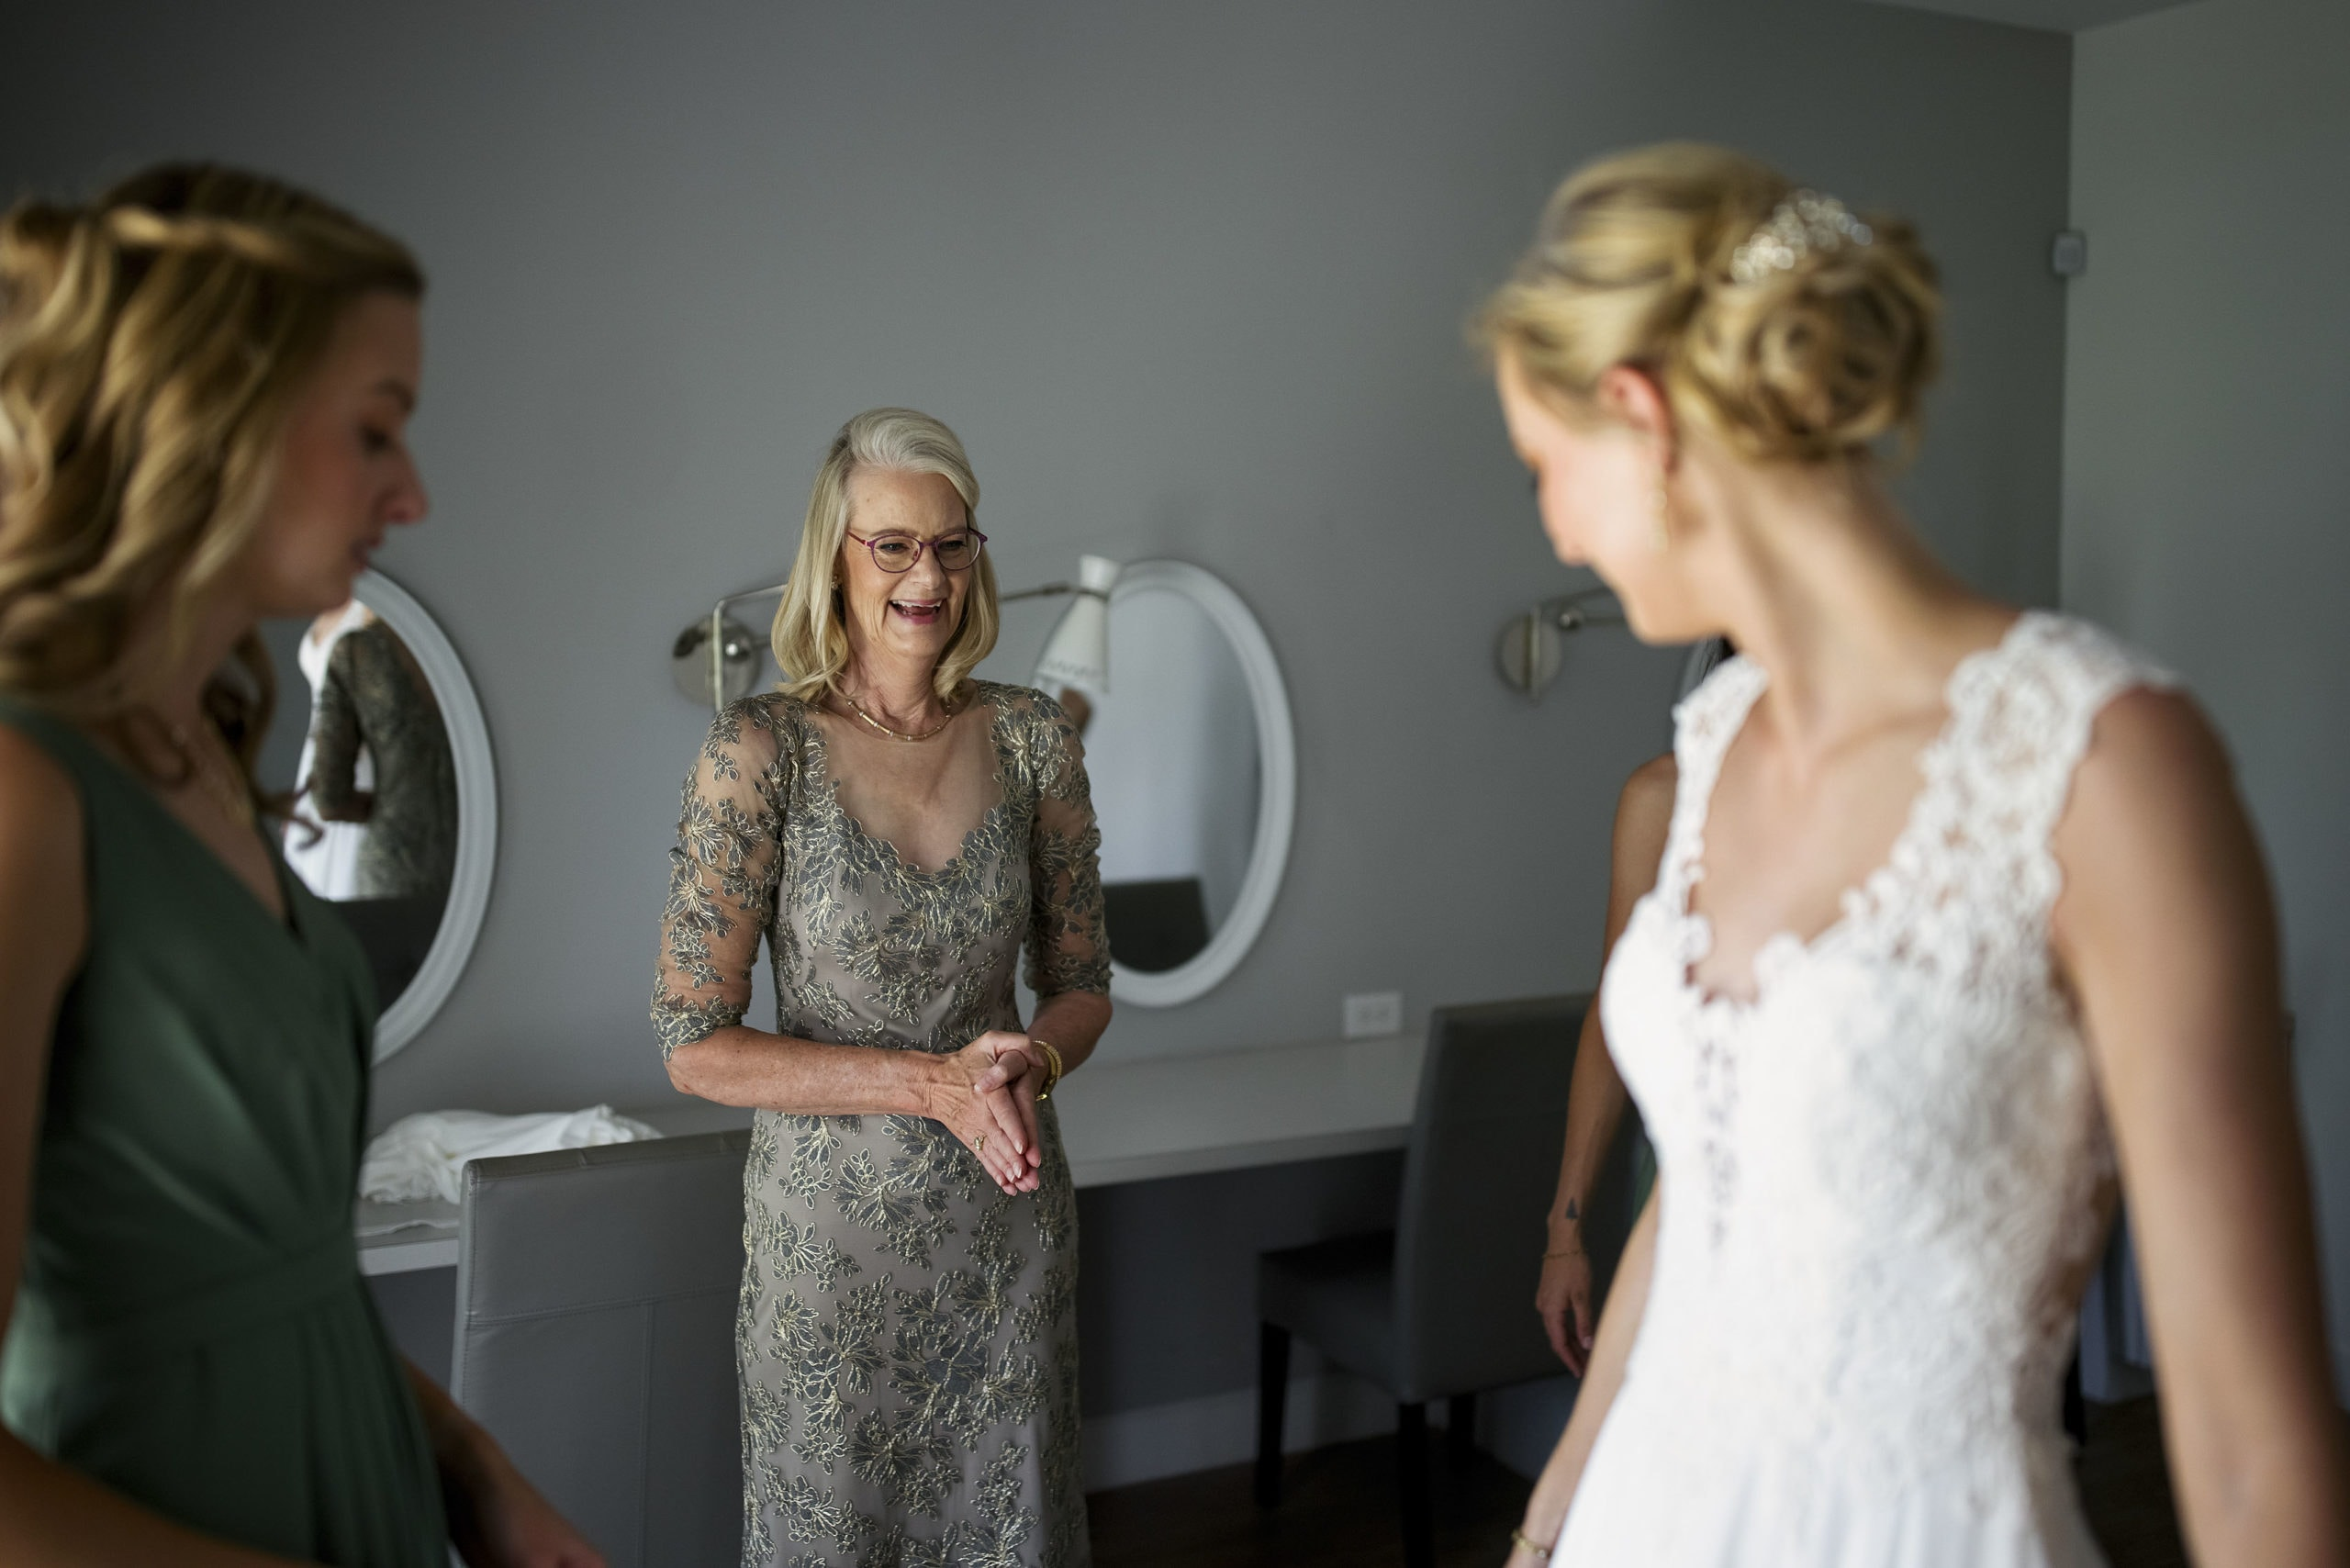 The mother of the bride reacts after Jennifer finishes putting on her wedding dress